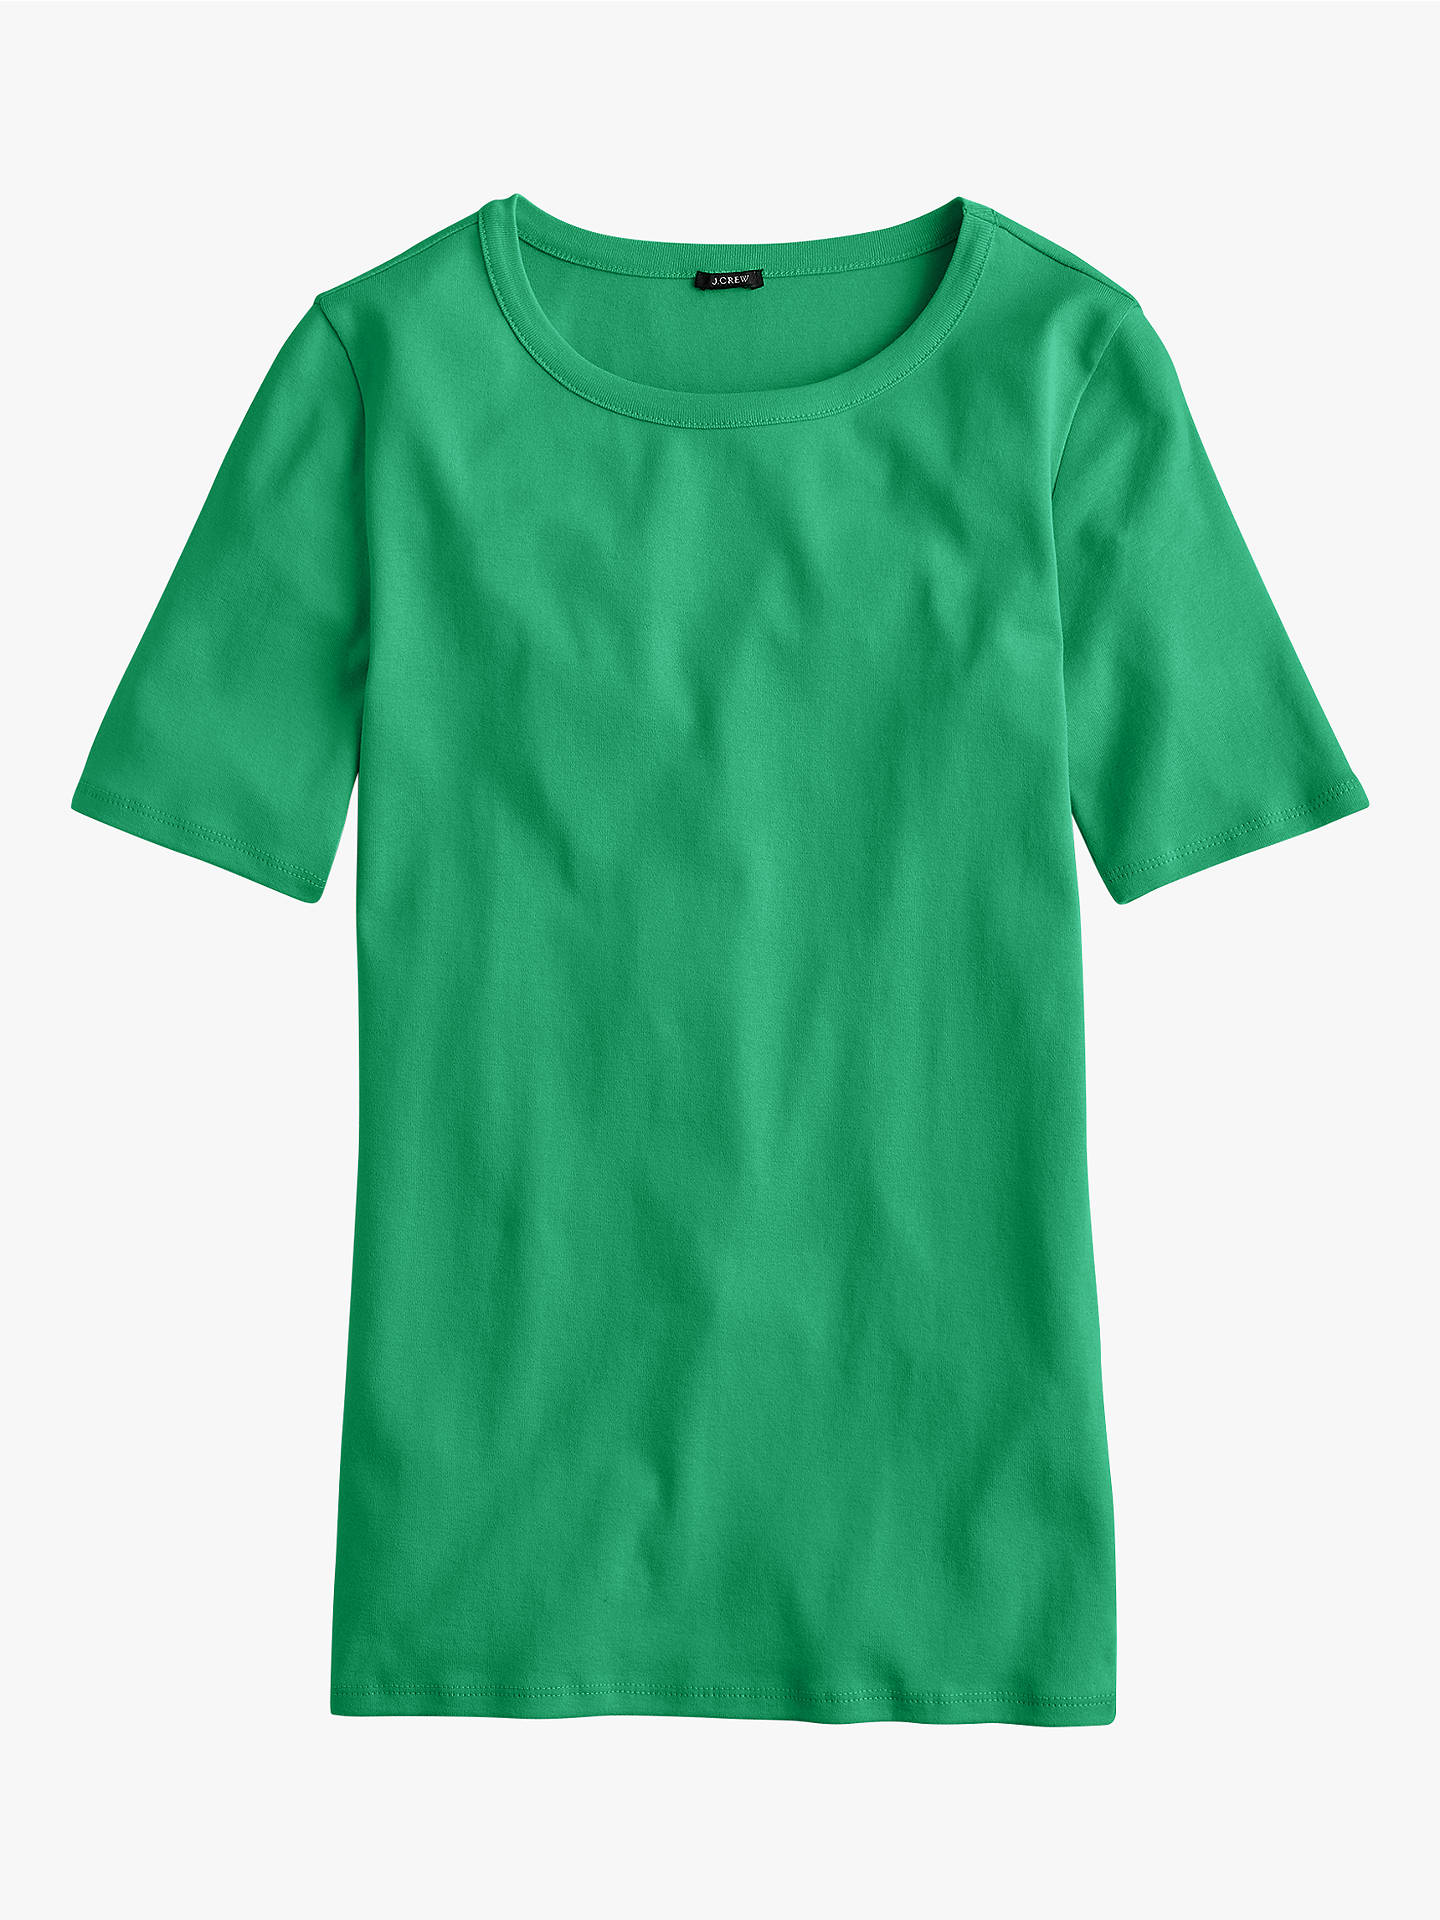 86bc2cd9cbe0 Buy J.Crew Perfect Fit T-Shirt, Alpine Meadow, XS Online at